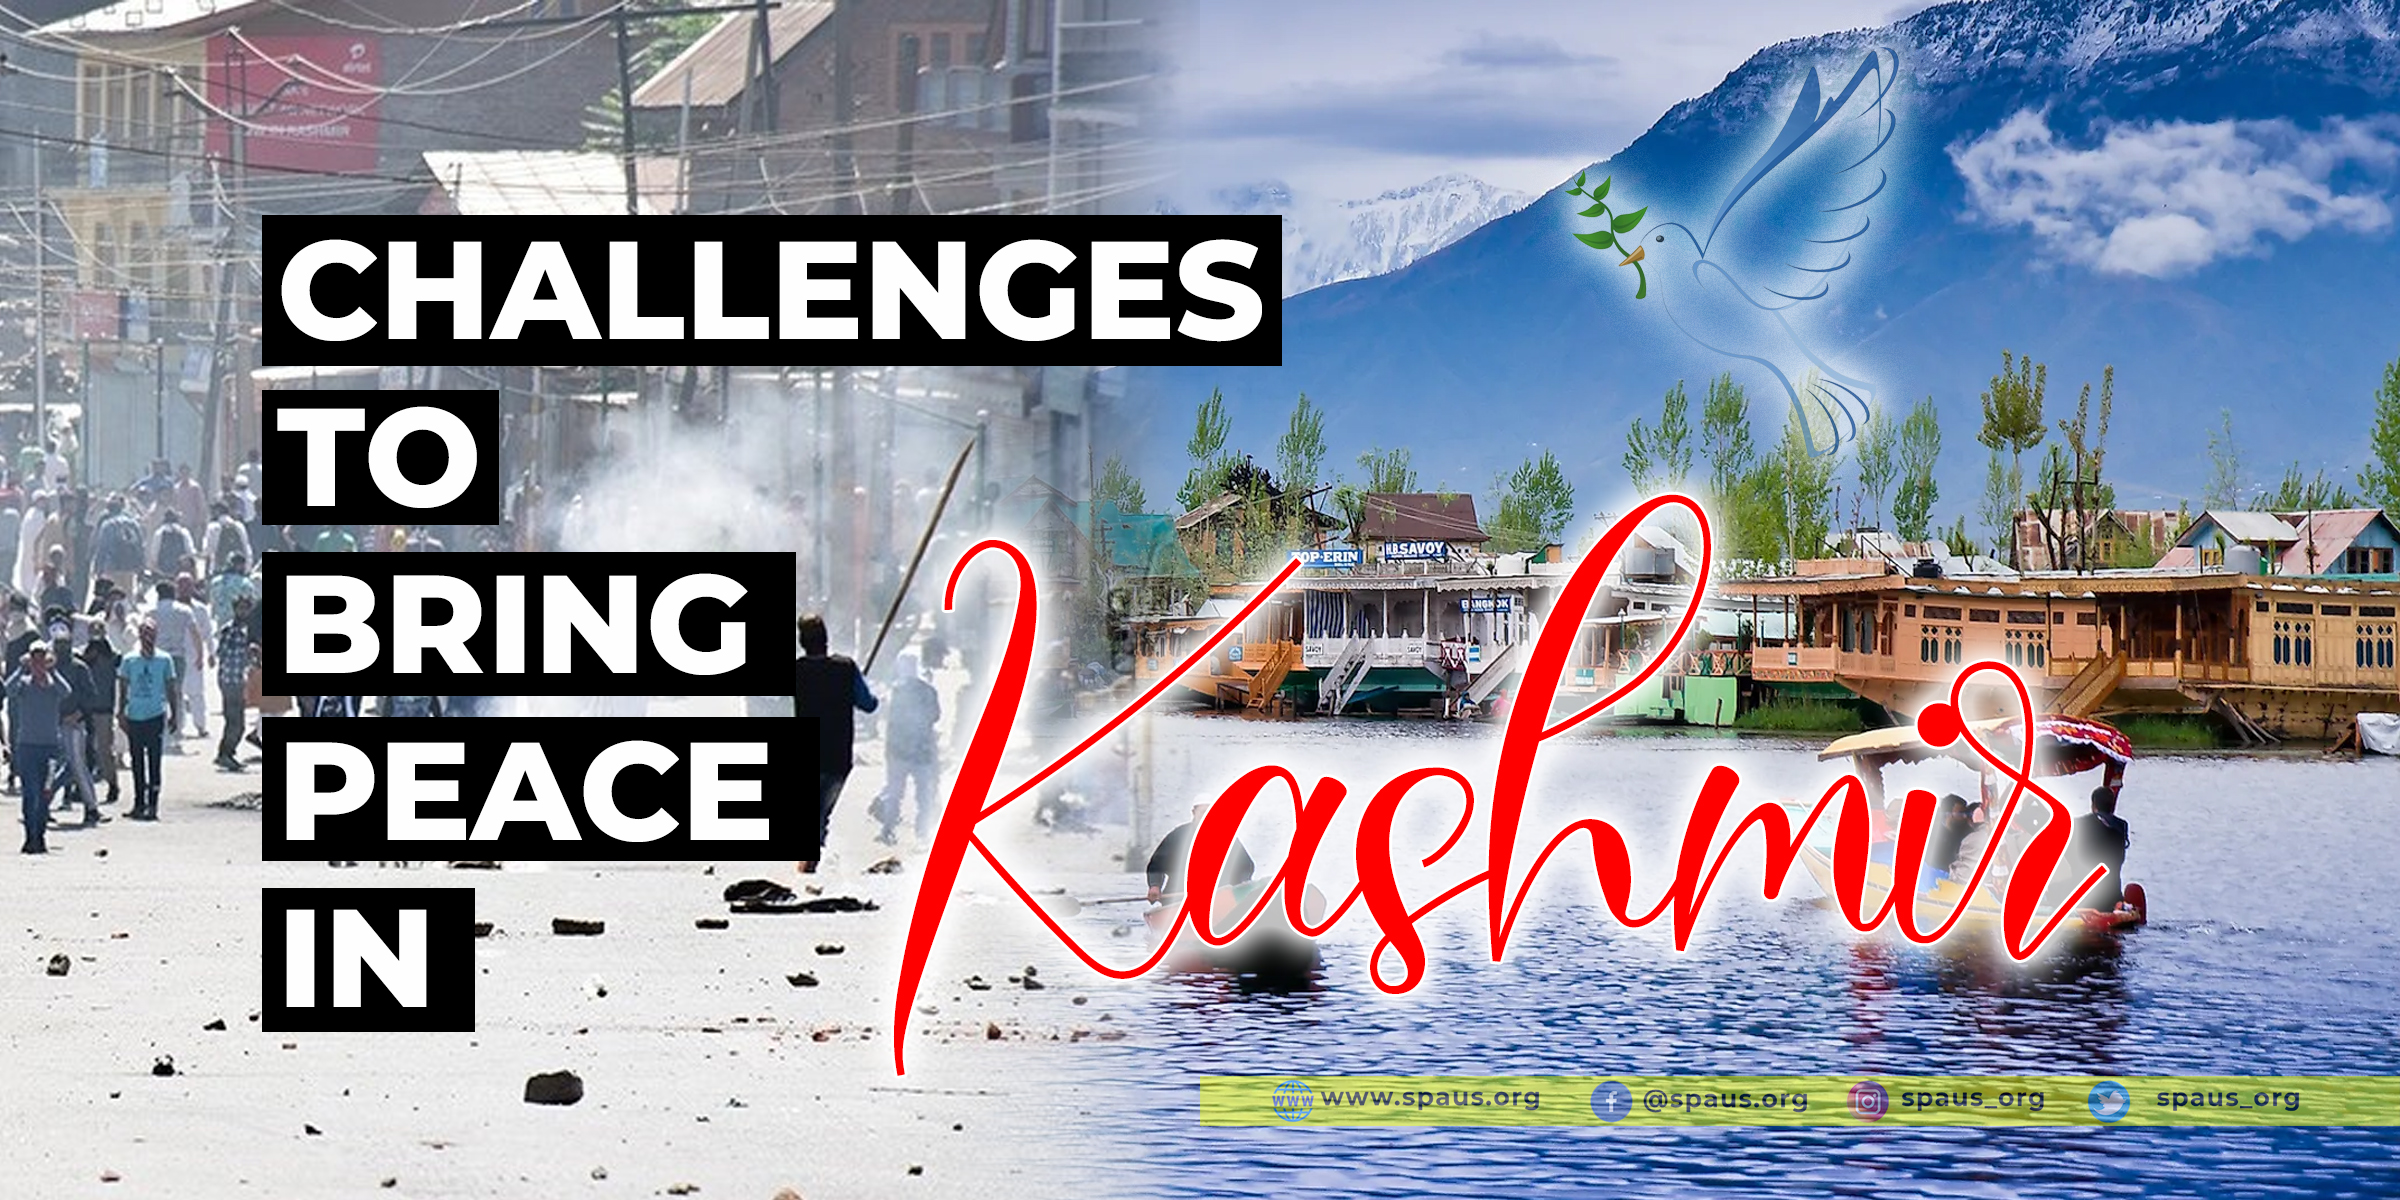 Challenges to bring peace in Kashmir